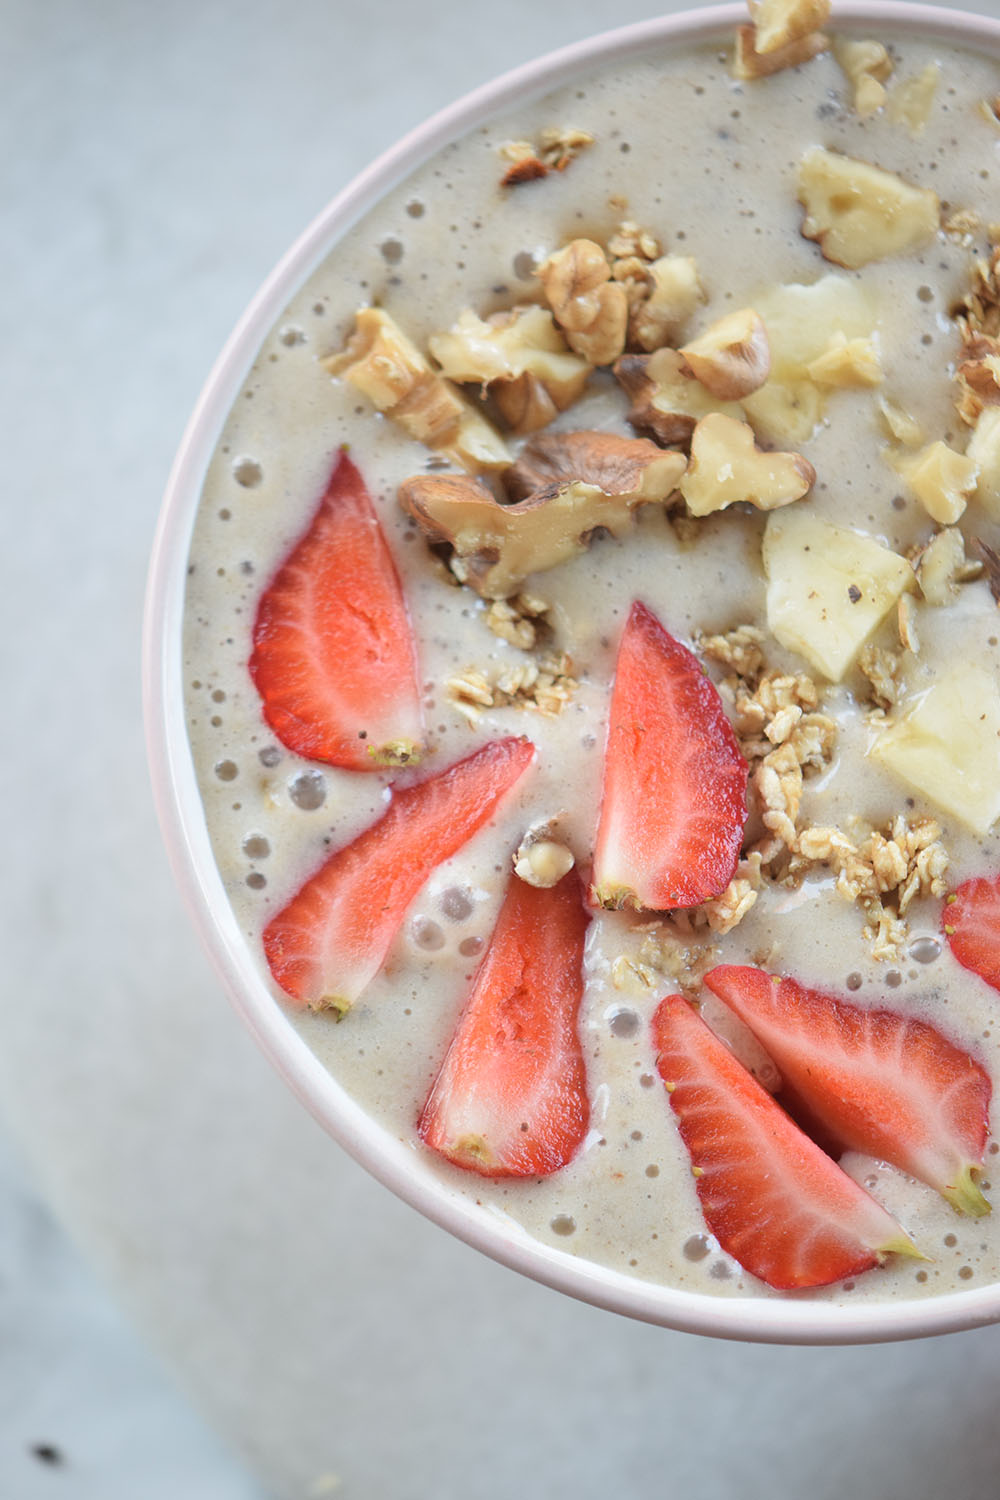 This Strawberry Banana and Walnut Smoothie Bowl is delicious and nutritious!!